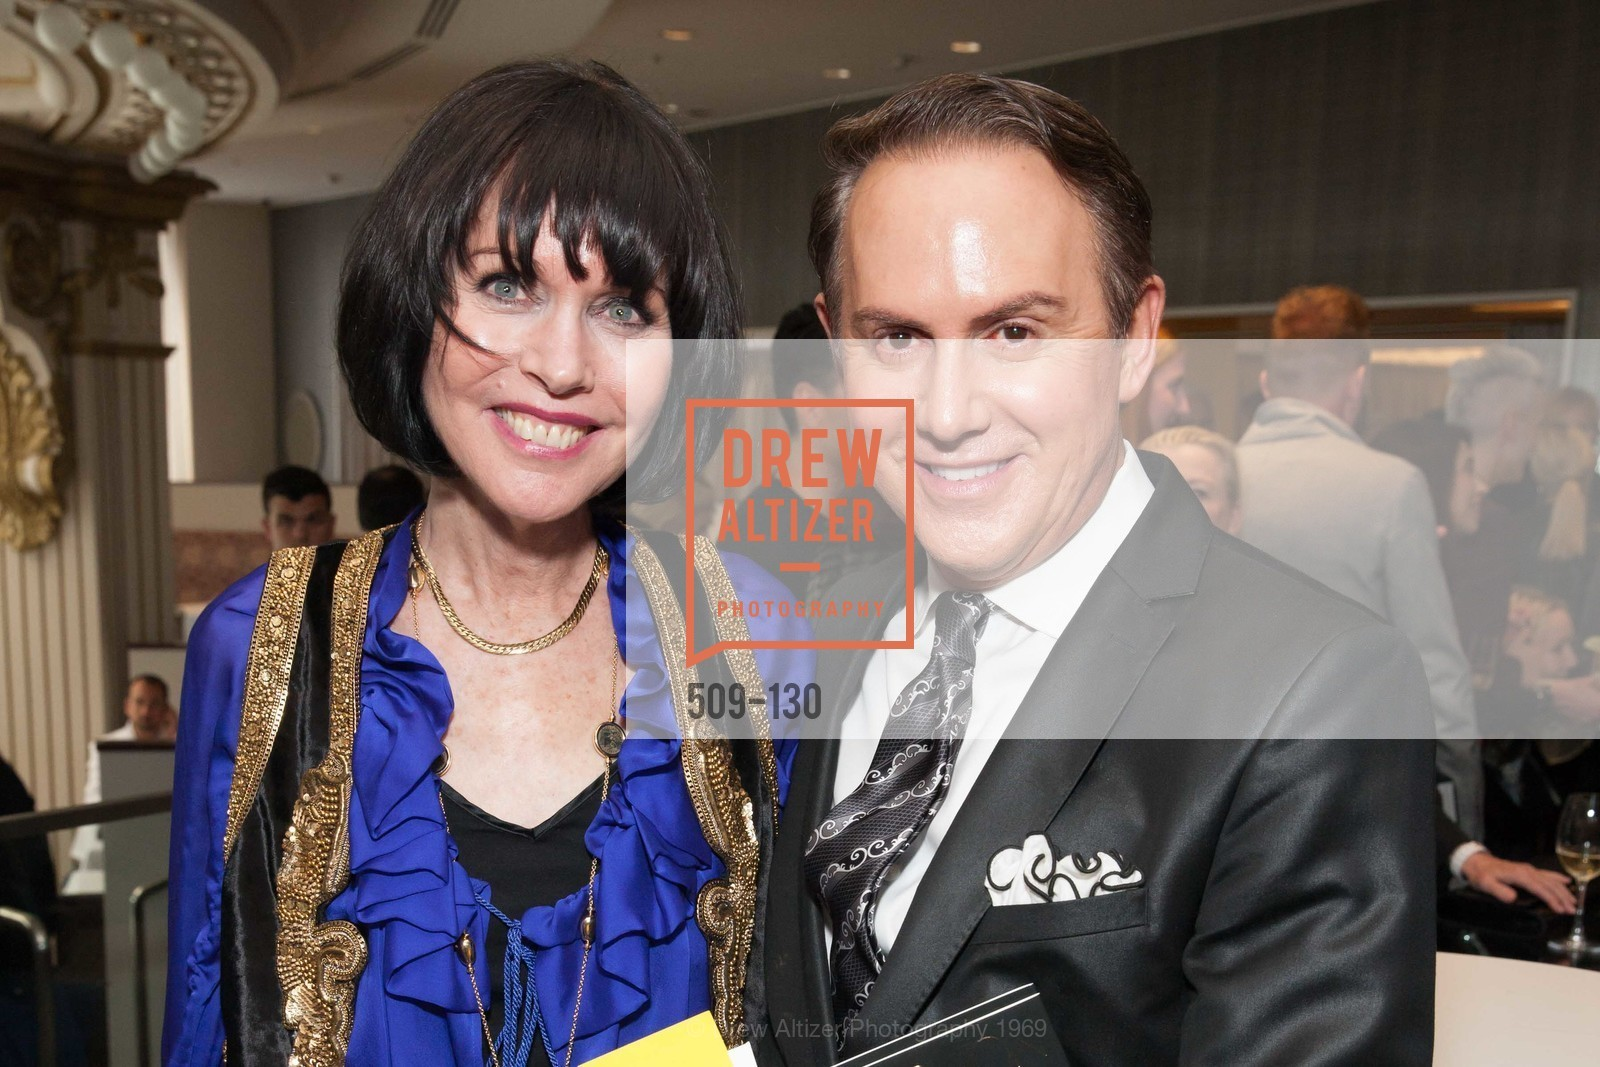 Christine Suppes, Joel Goodrich, Electric Fashion Book Signing with Christine Suppes & Ken Downing, Neiman Marcus, Rotunda, May 26th, 2015,Drew Altizer, Drew Altizer Photography, full-service event agency, private events, San Francisco photographer, photographer California